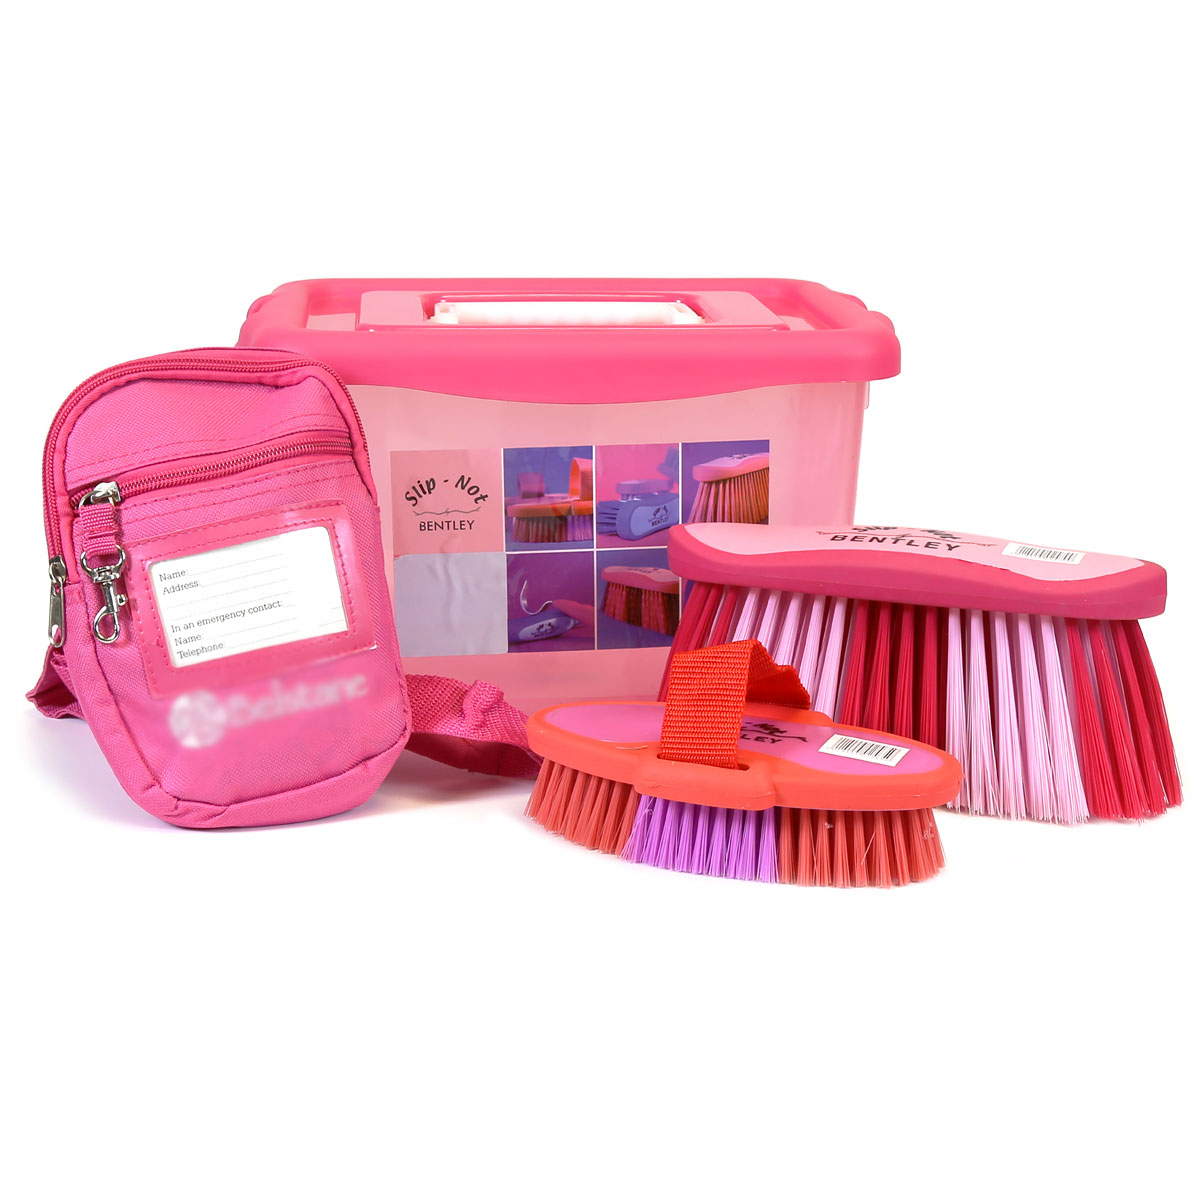 Bentley Slip Not Hoof Brush Pink At Burnhills: Bentley Equestrian Pink Horse Grooming Kit With Flick Body